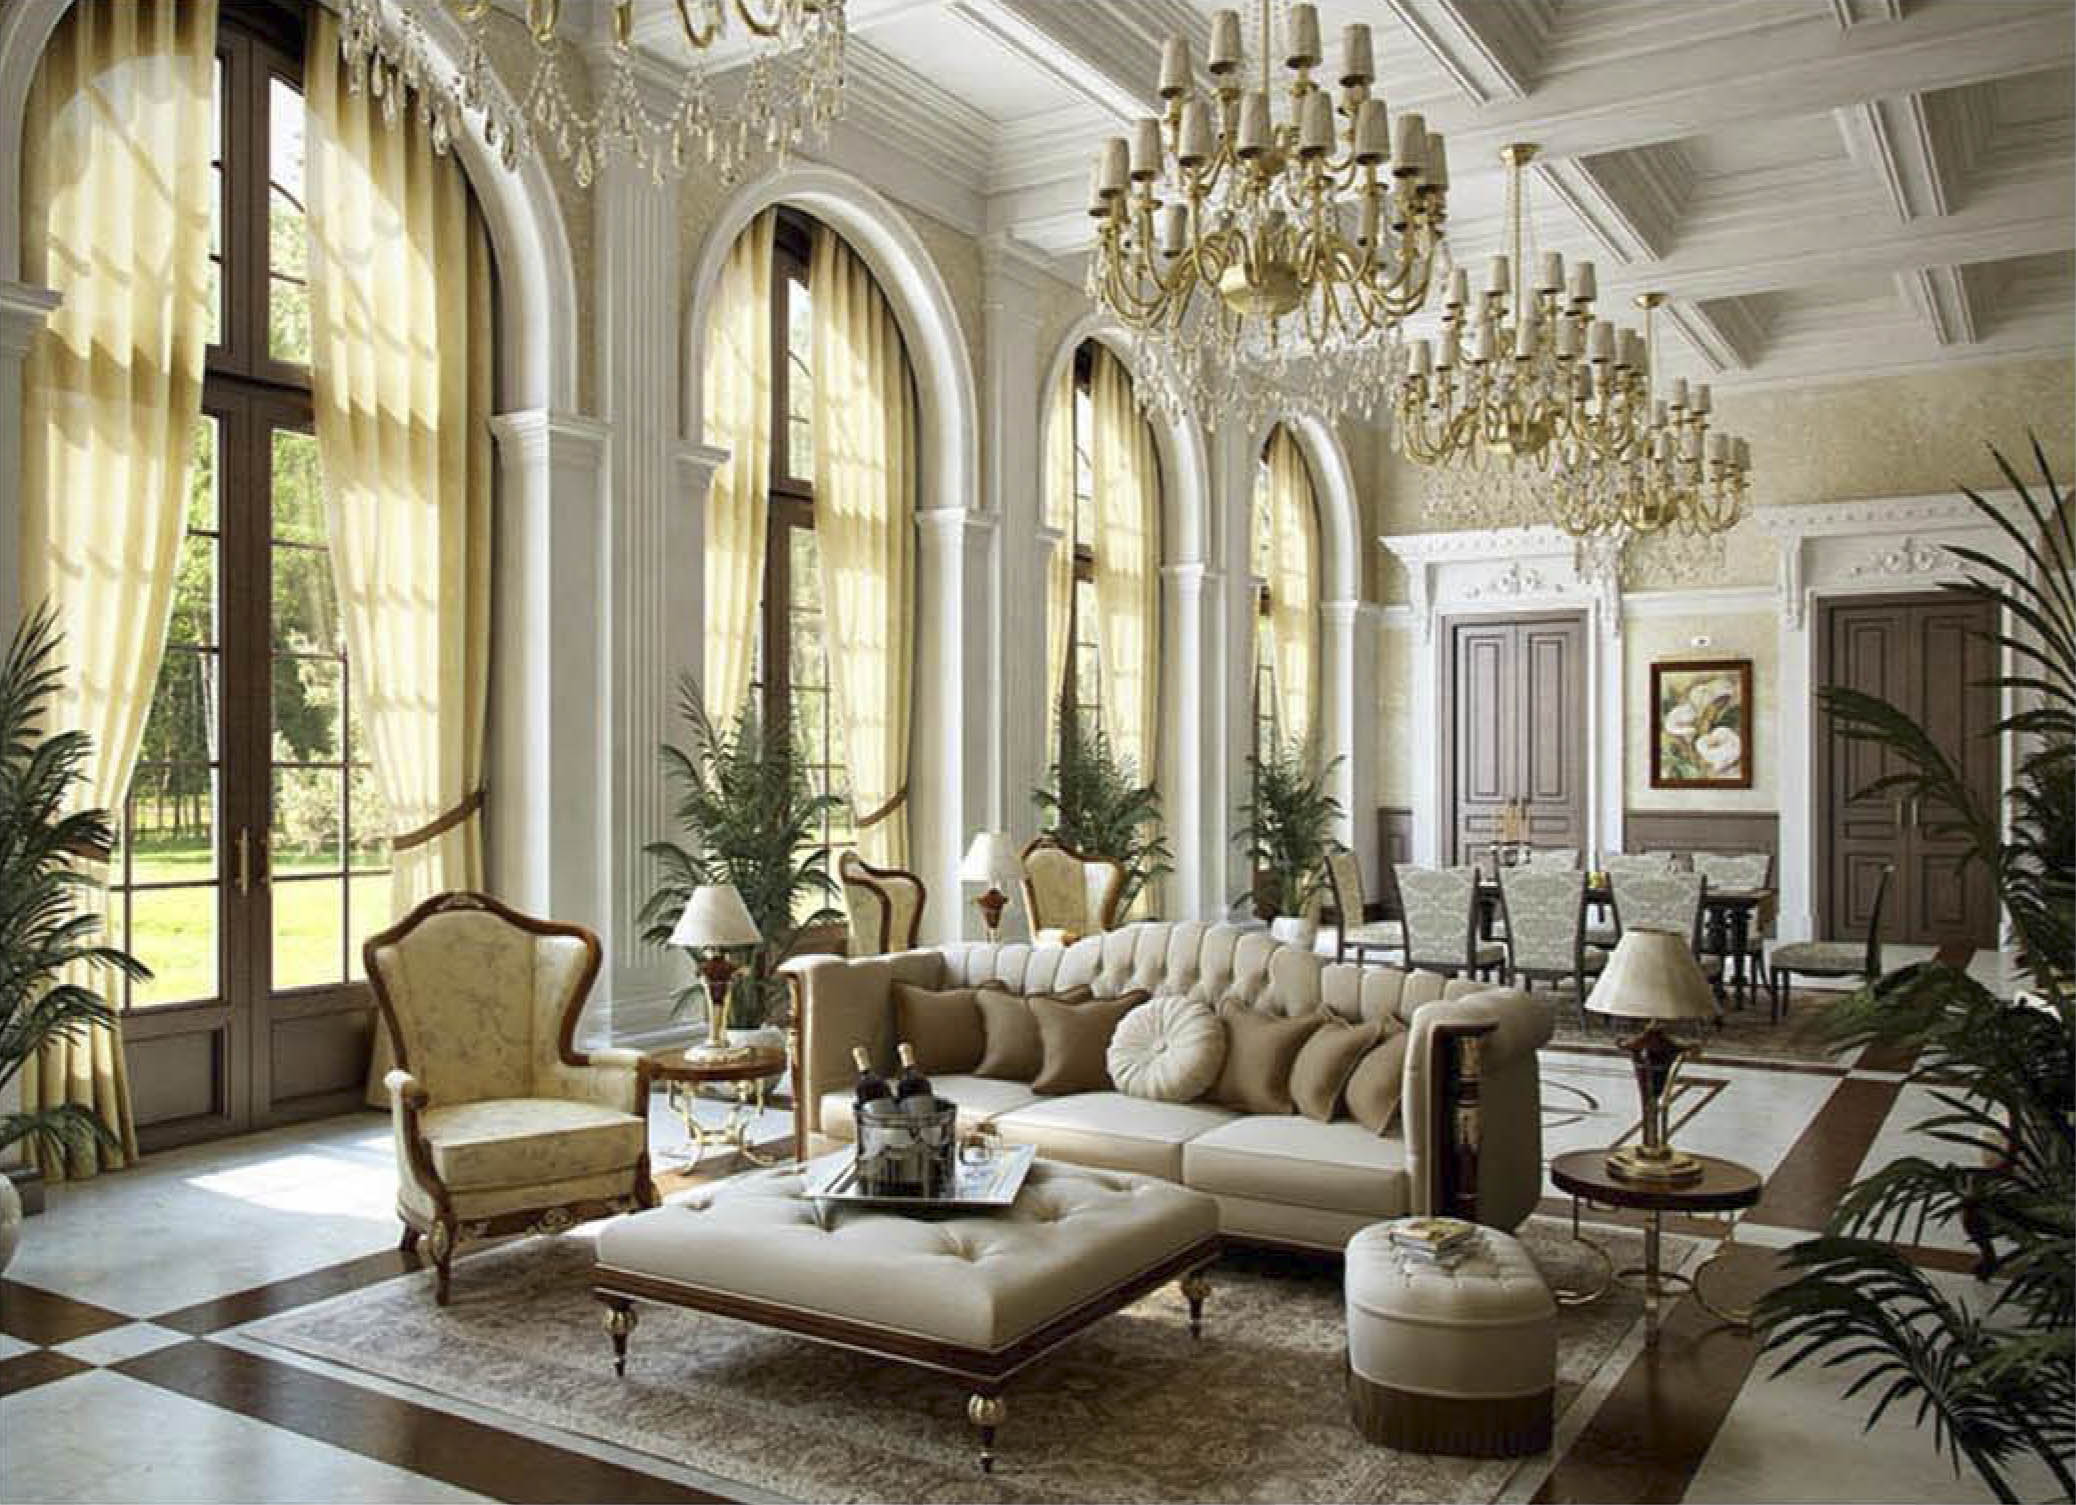 Doughty House London Is 130 Million Palace With Thames View Bloomberg